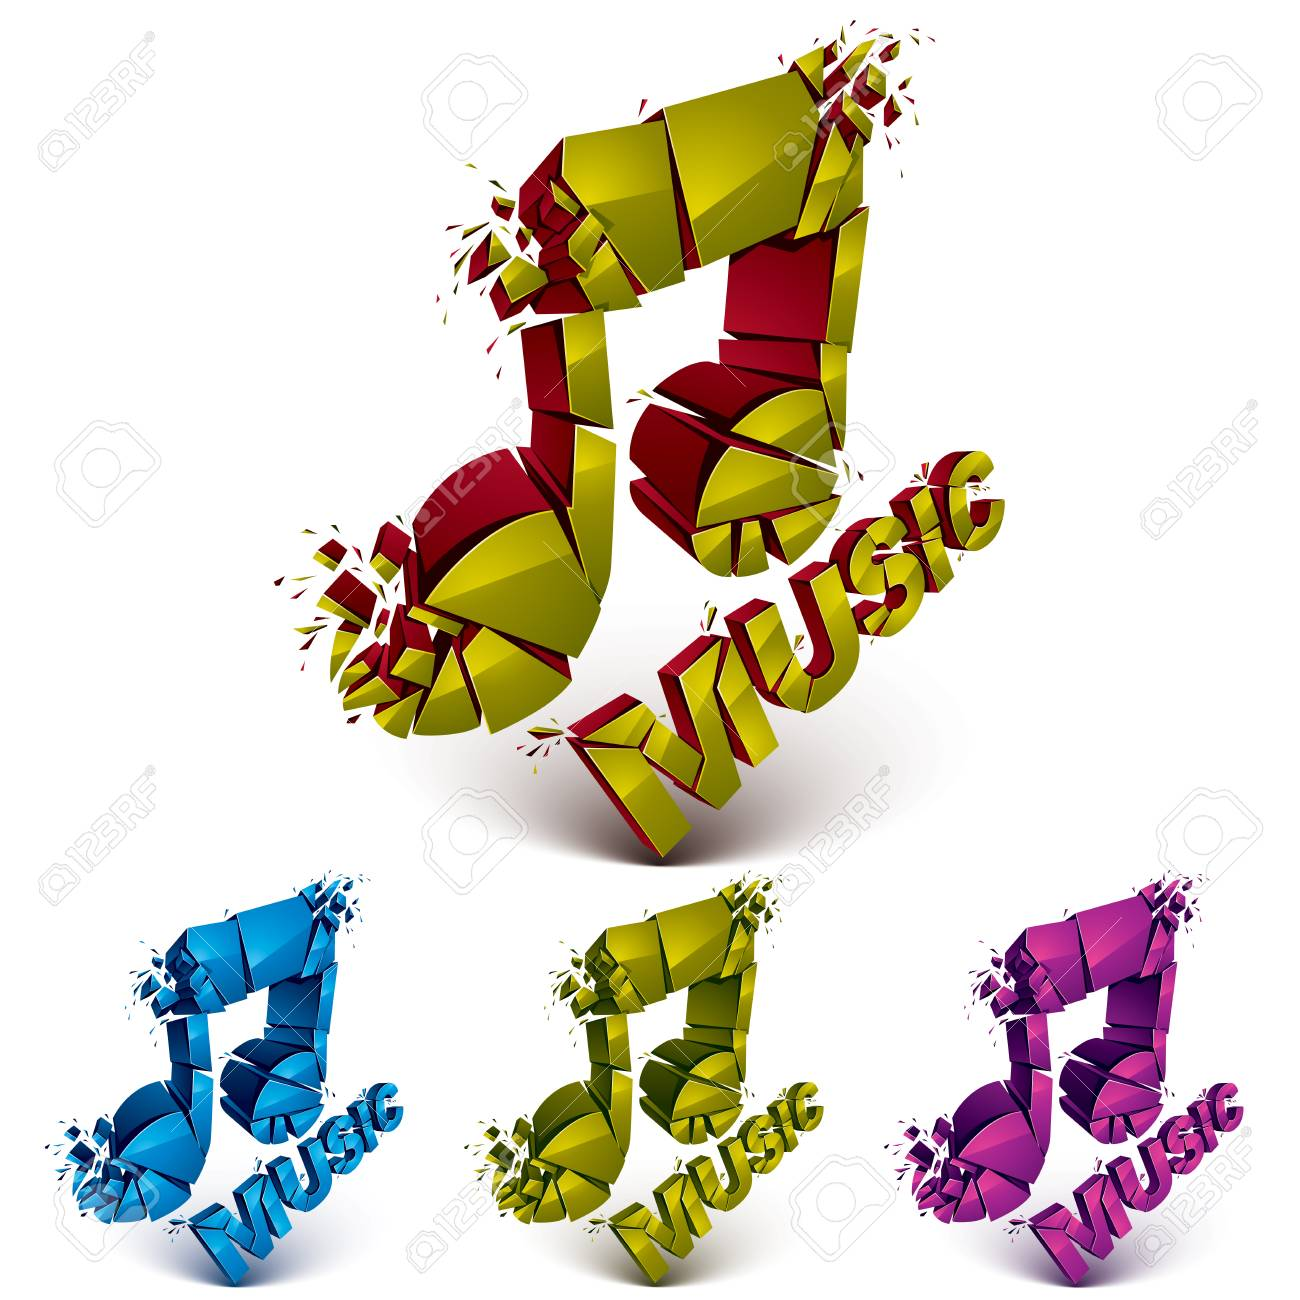 Set Of 3d Vector Shattered Musical Notes With Music Word Art